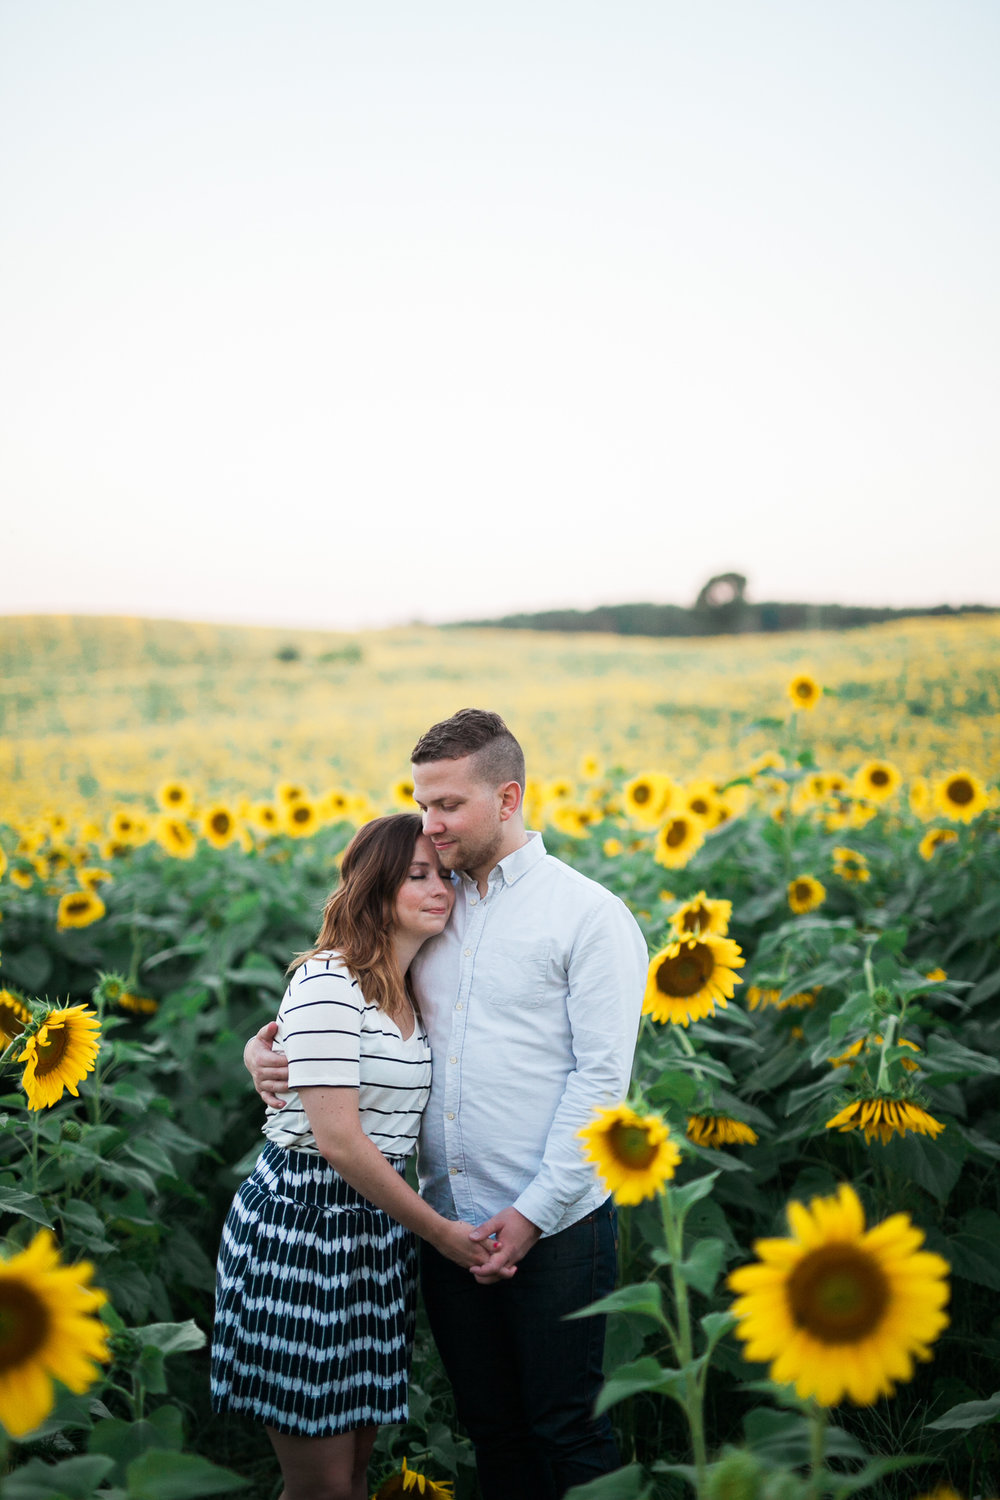 Pope-Farms-Sunflower-Engagement-Session-Madison-Wisconsin_013.jpg